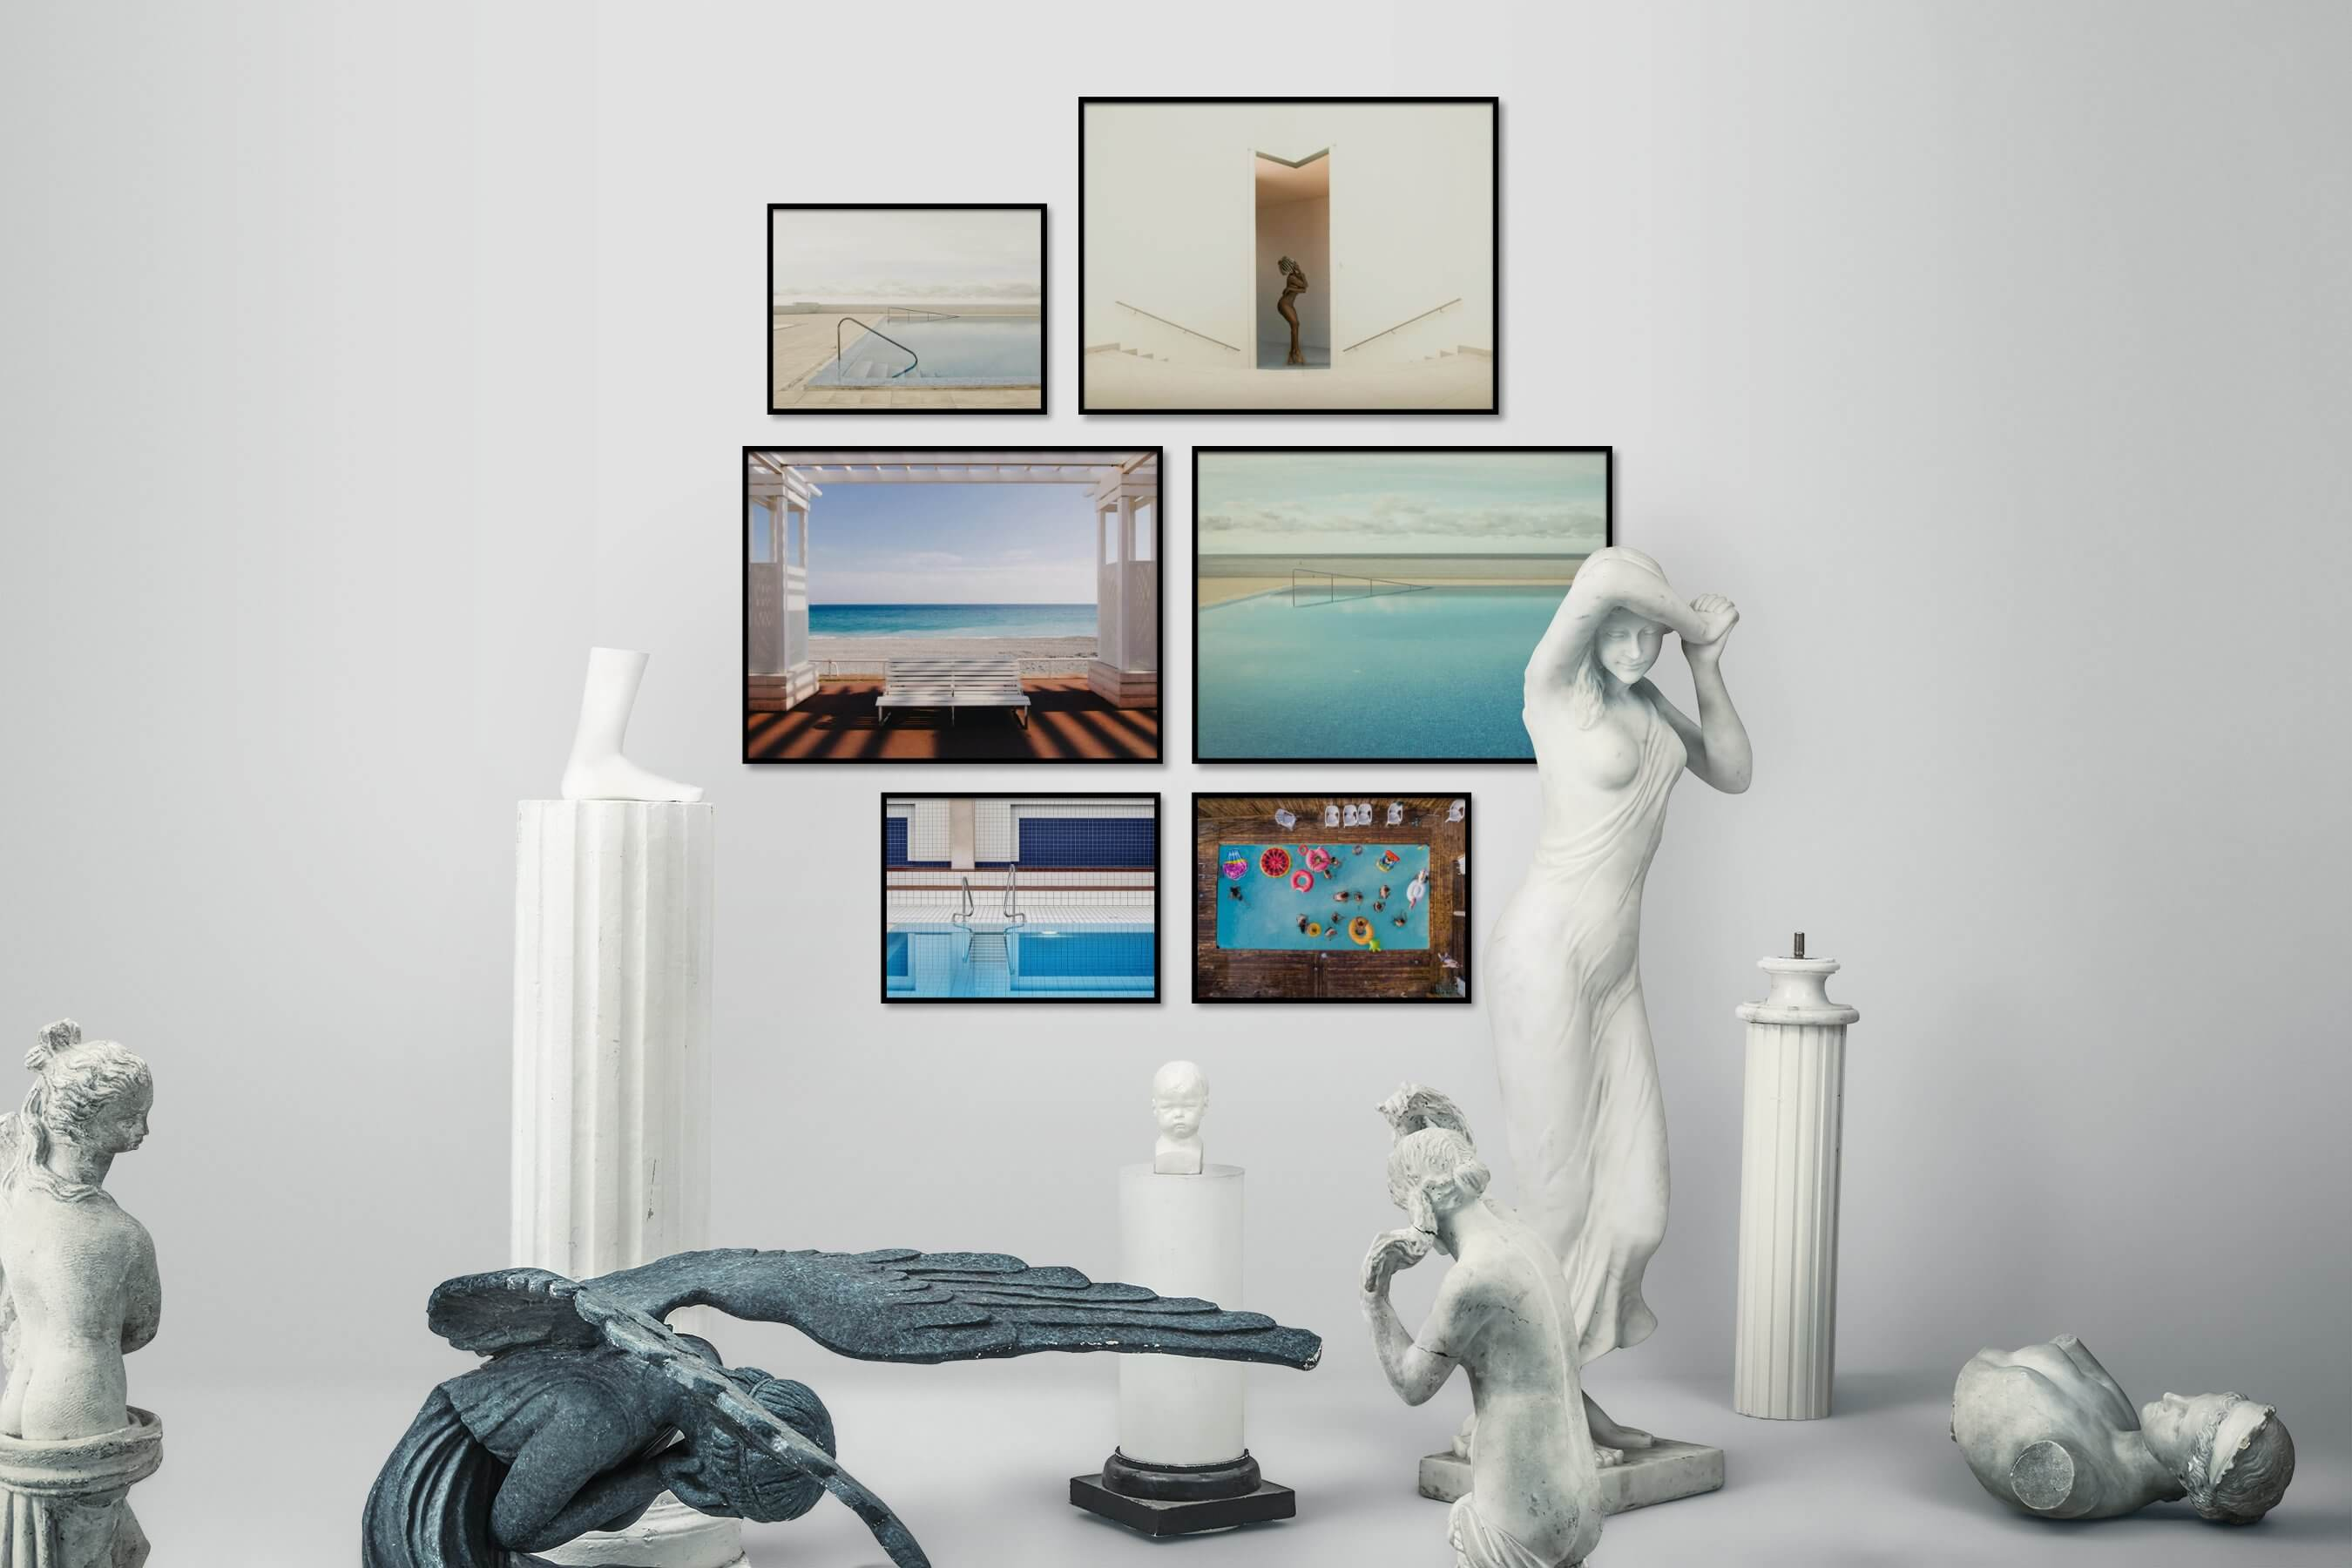 Gallery wall idea with six framed pictures arranged on a wall depicting For the Minimalist, Beach & Water, Vintage, Artsy, For the Moderate, and Colorful